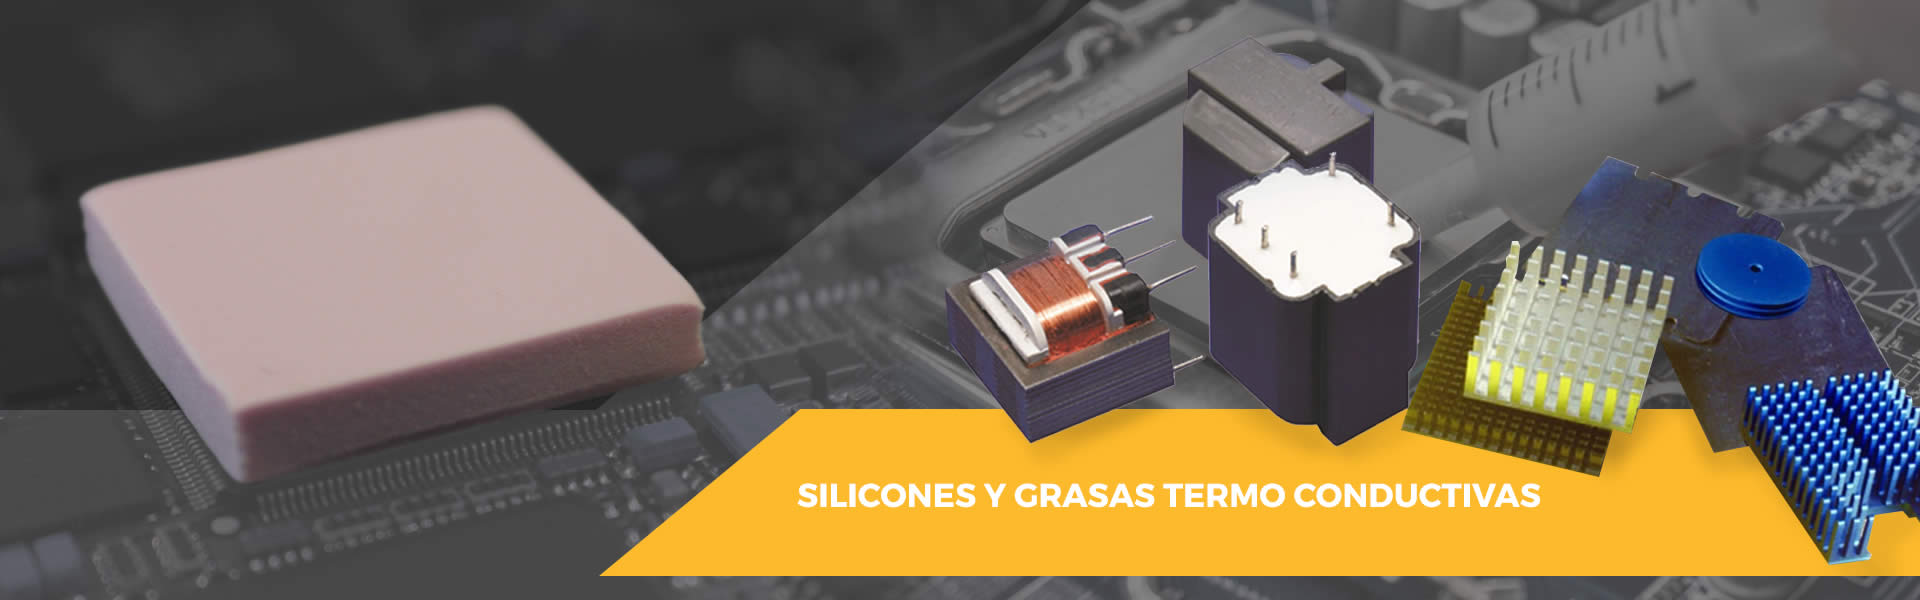 banner_leds_silicones